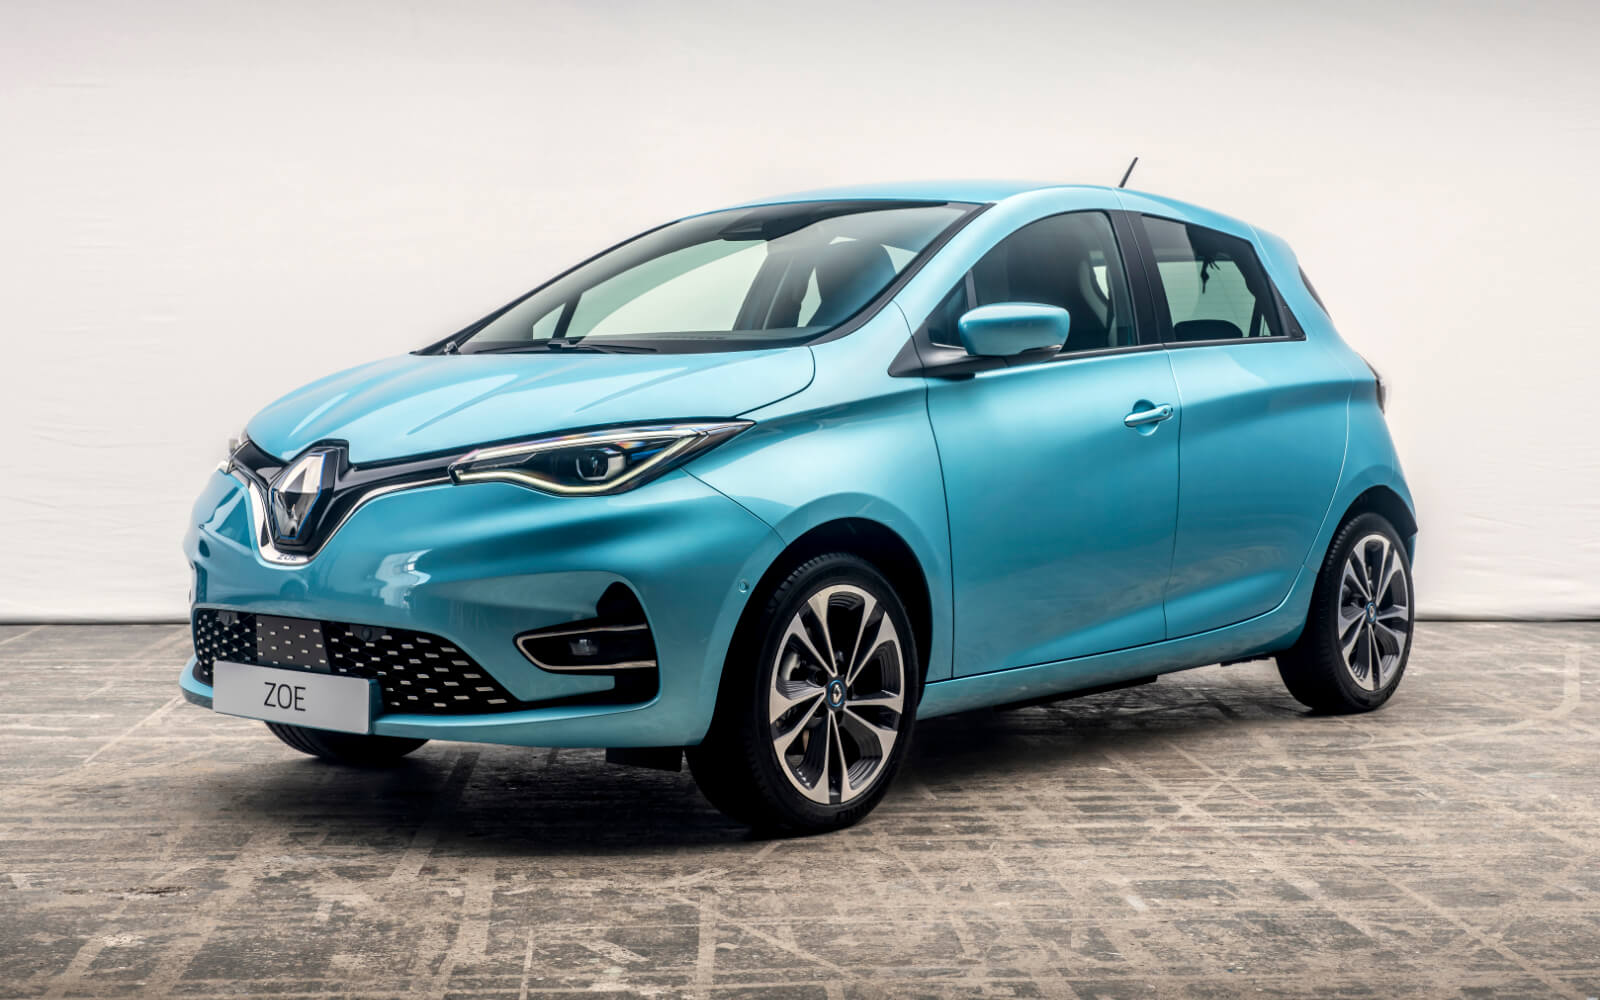 The Renault Zoe is a BEV